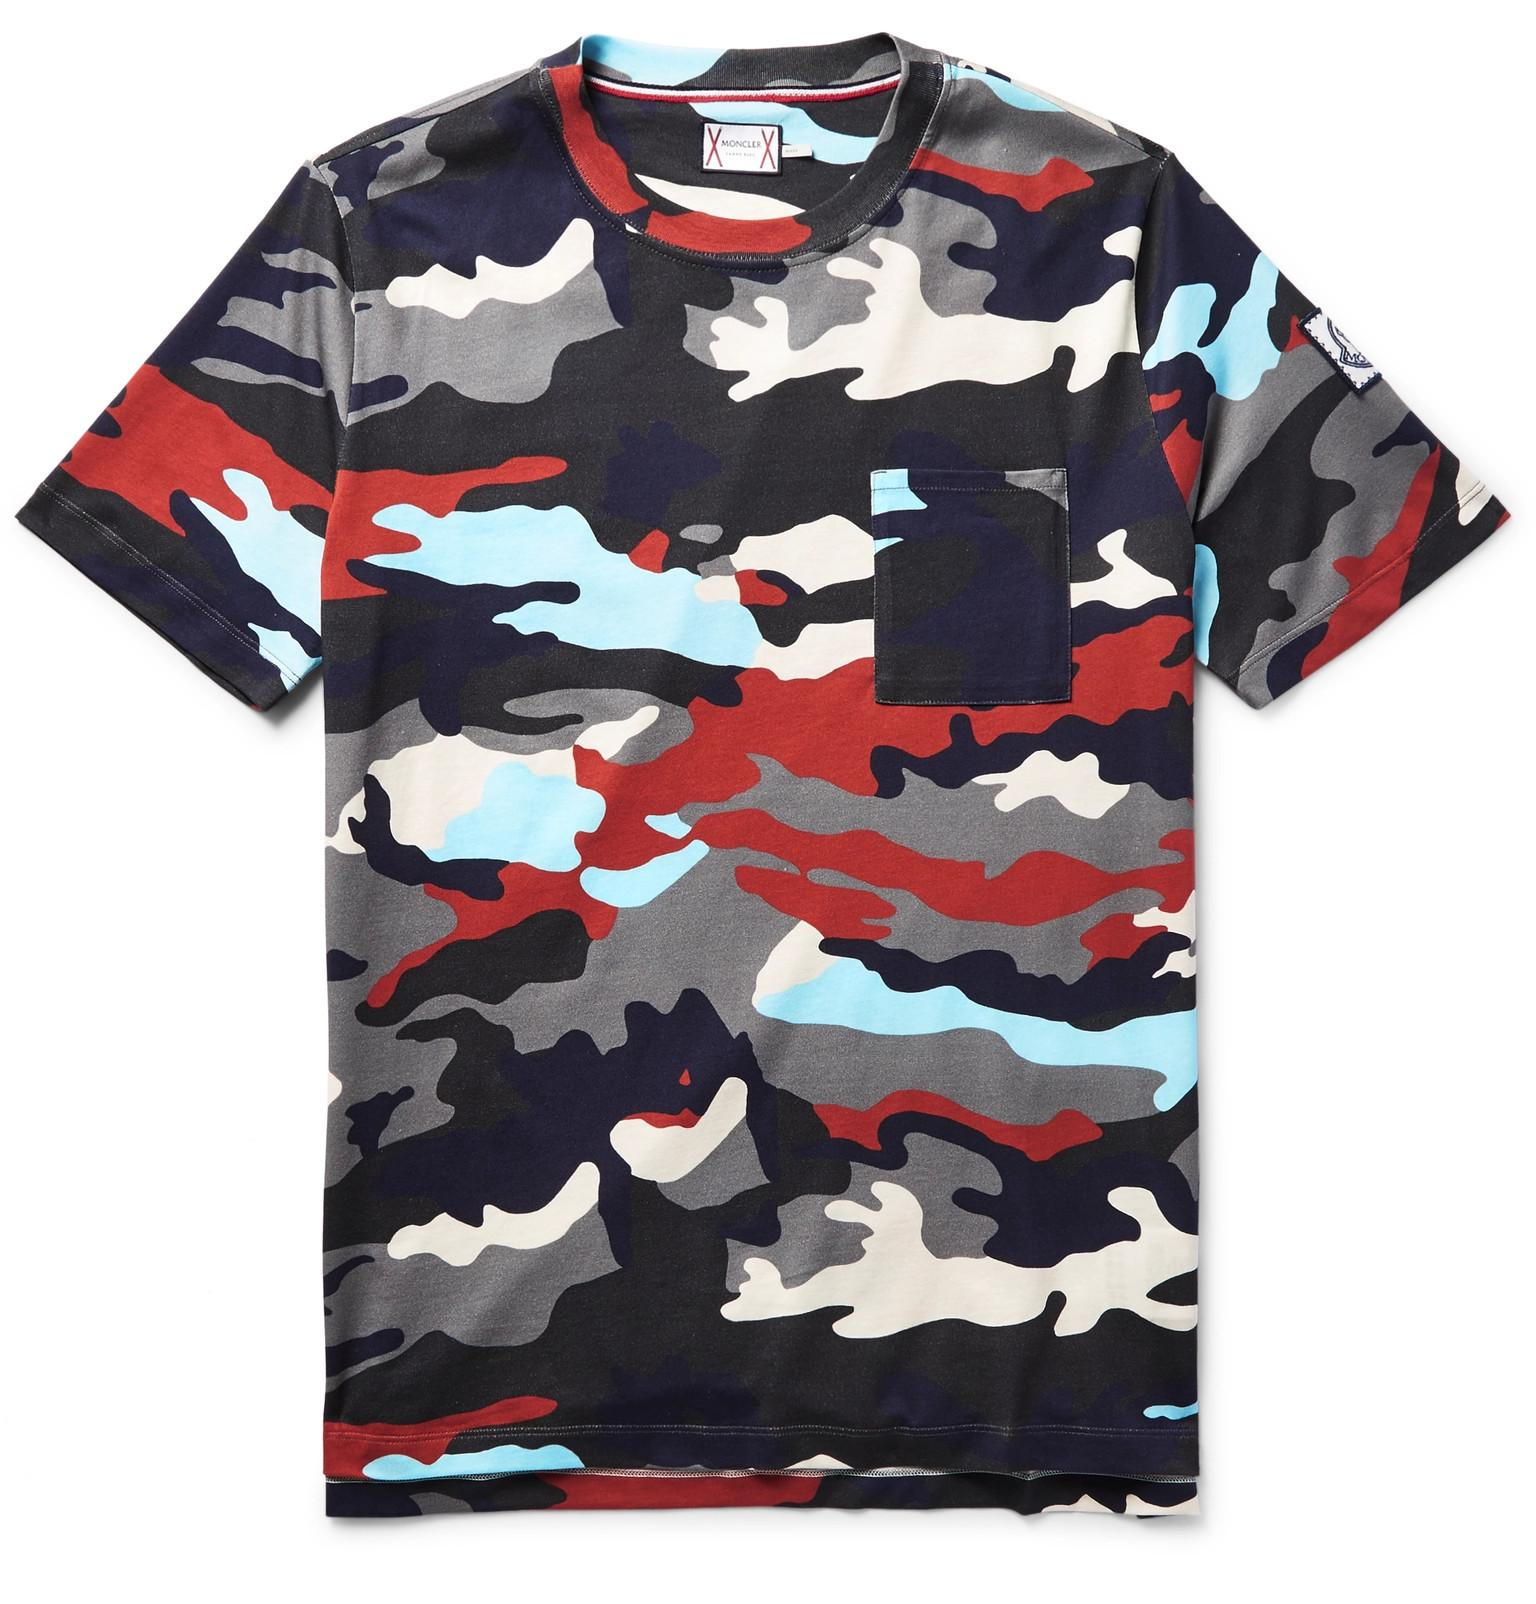 Moncler gamme bleu camouflage print cotton jersey t shirt for Camouflage t shirt printing